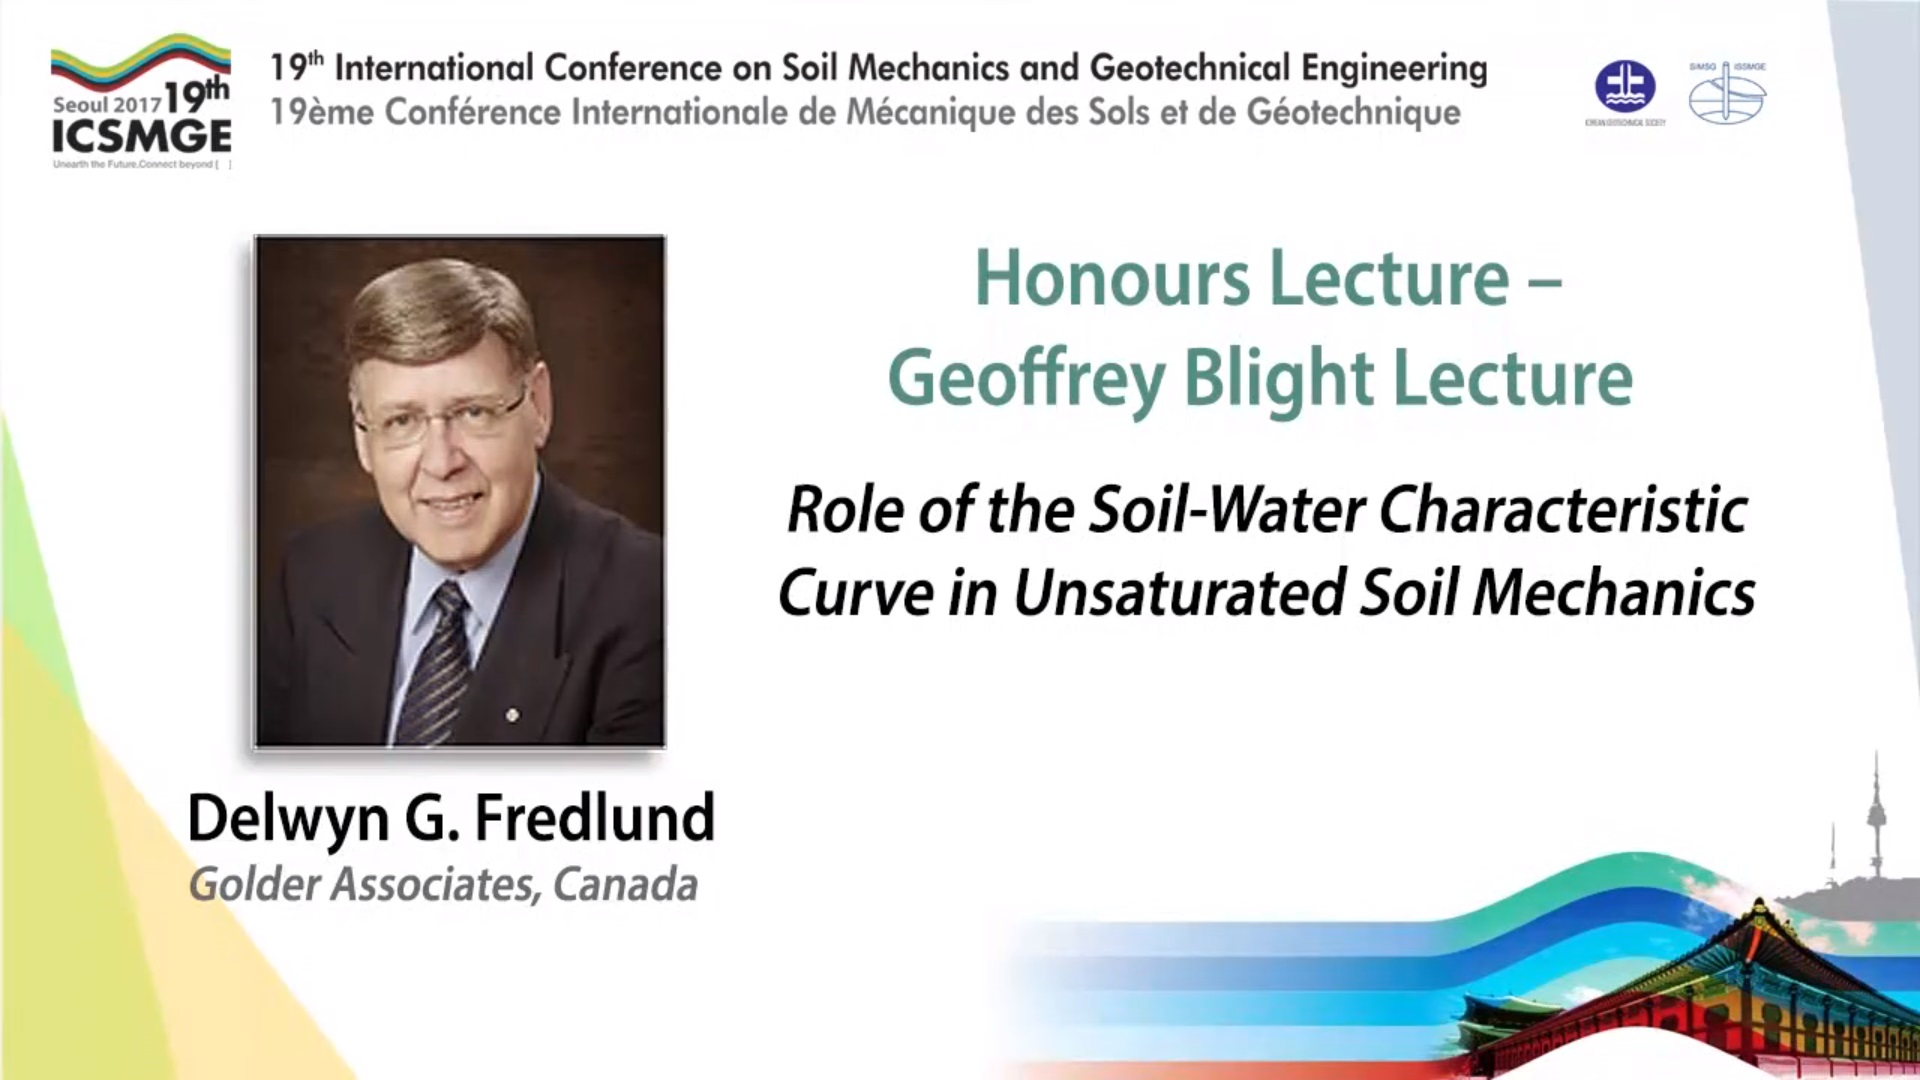 "Role of the Soil-Water Characteristic Curve in Unsaturated Soil Mechanics (Geoffrey Blight Lecture - 19th ICSMGE) {""category"":""honour_lecture"",""subjects"":[""Soil Mechanics""],""number"":""ICSMGE19106"",""instructors"":[""Delwyn G. Fredlund""]}"